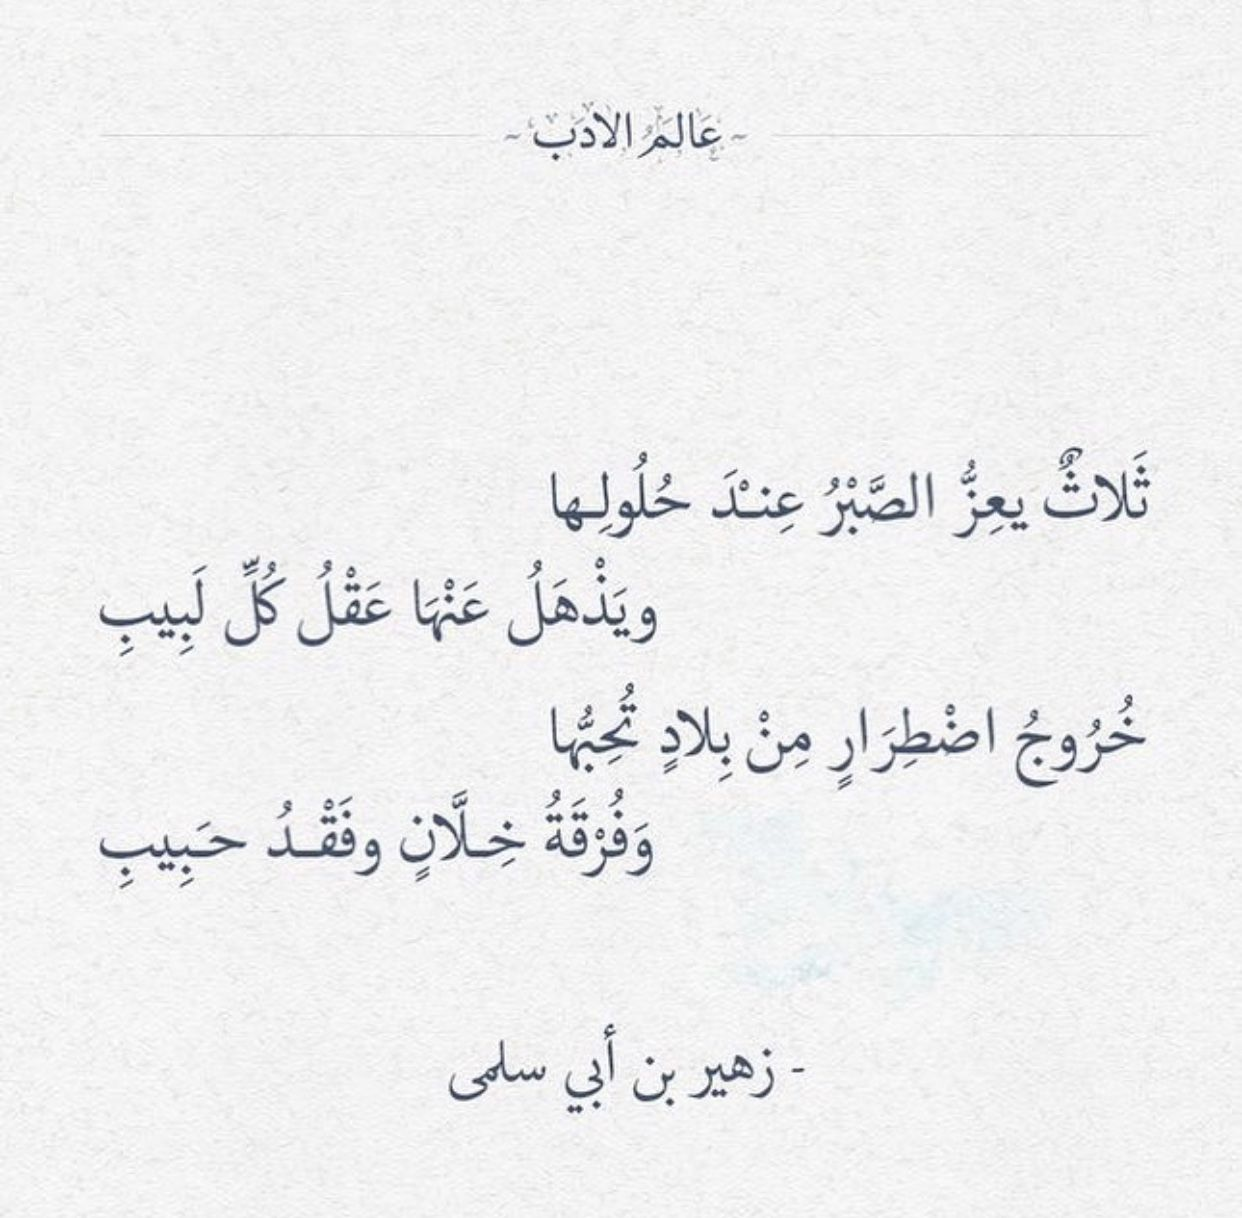 Pin By H On كلام جميل Quran Quotes Feelings Words Pretty Words